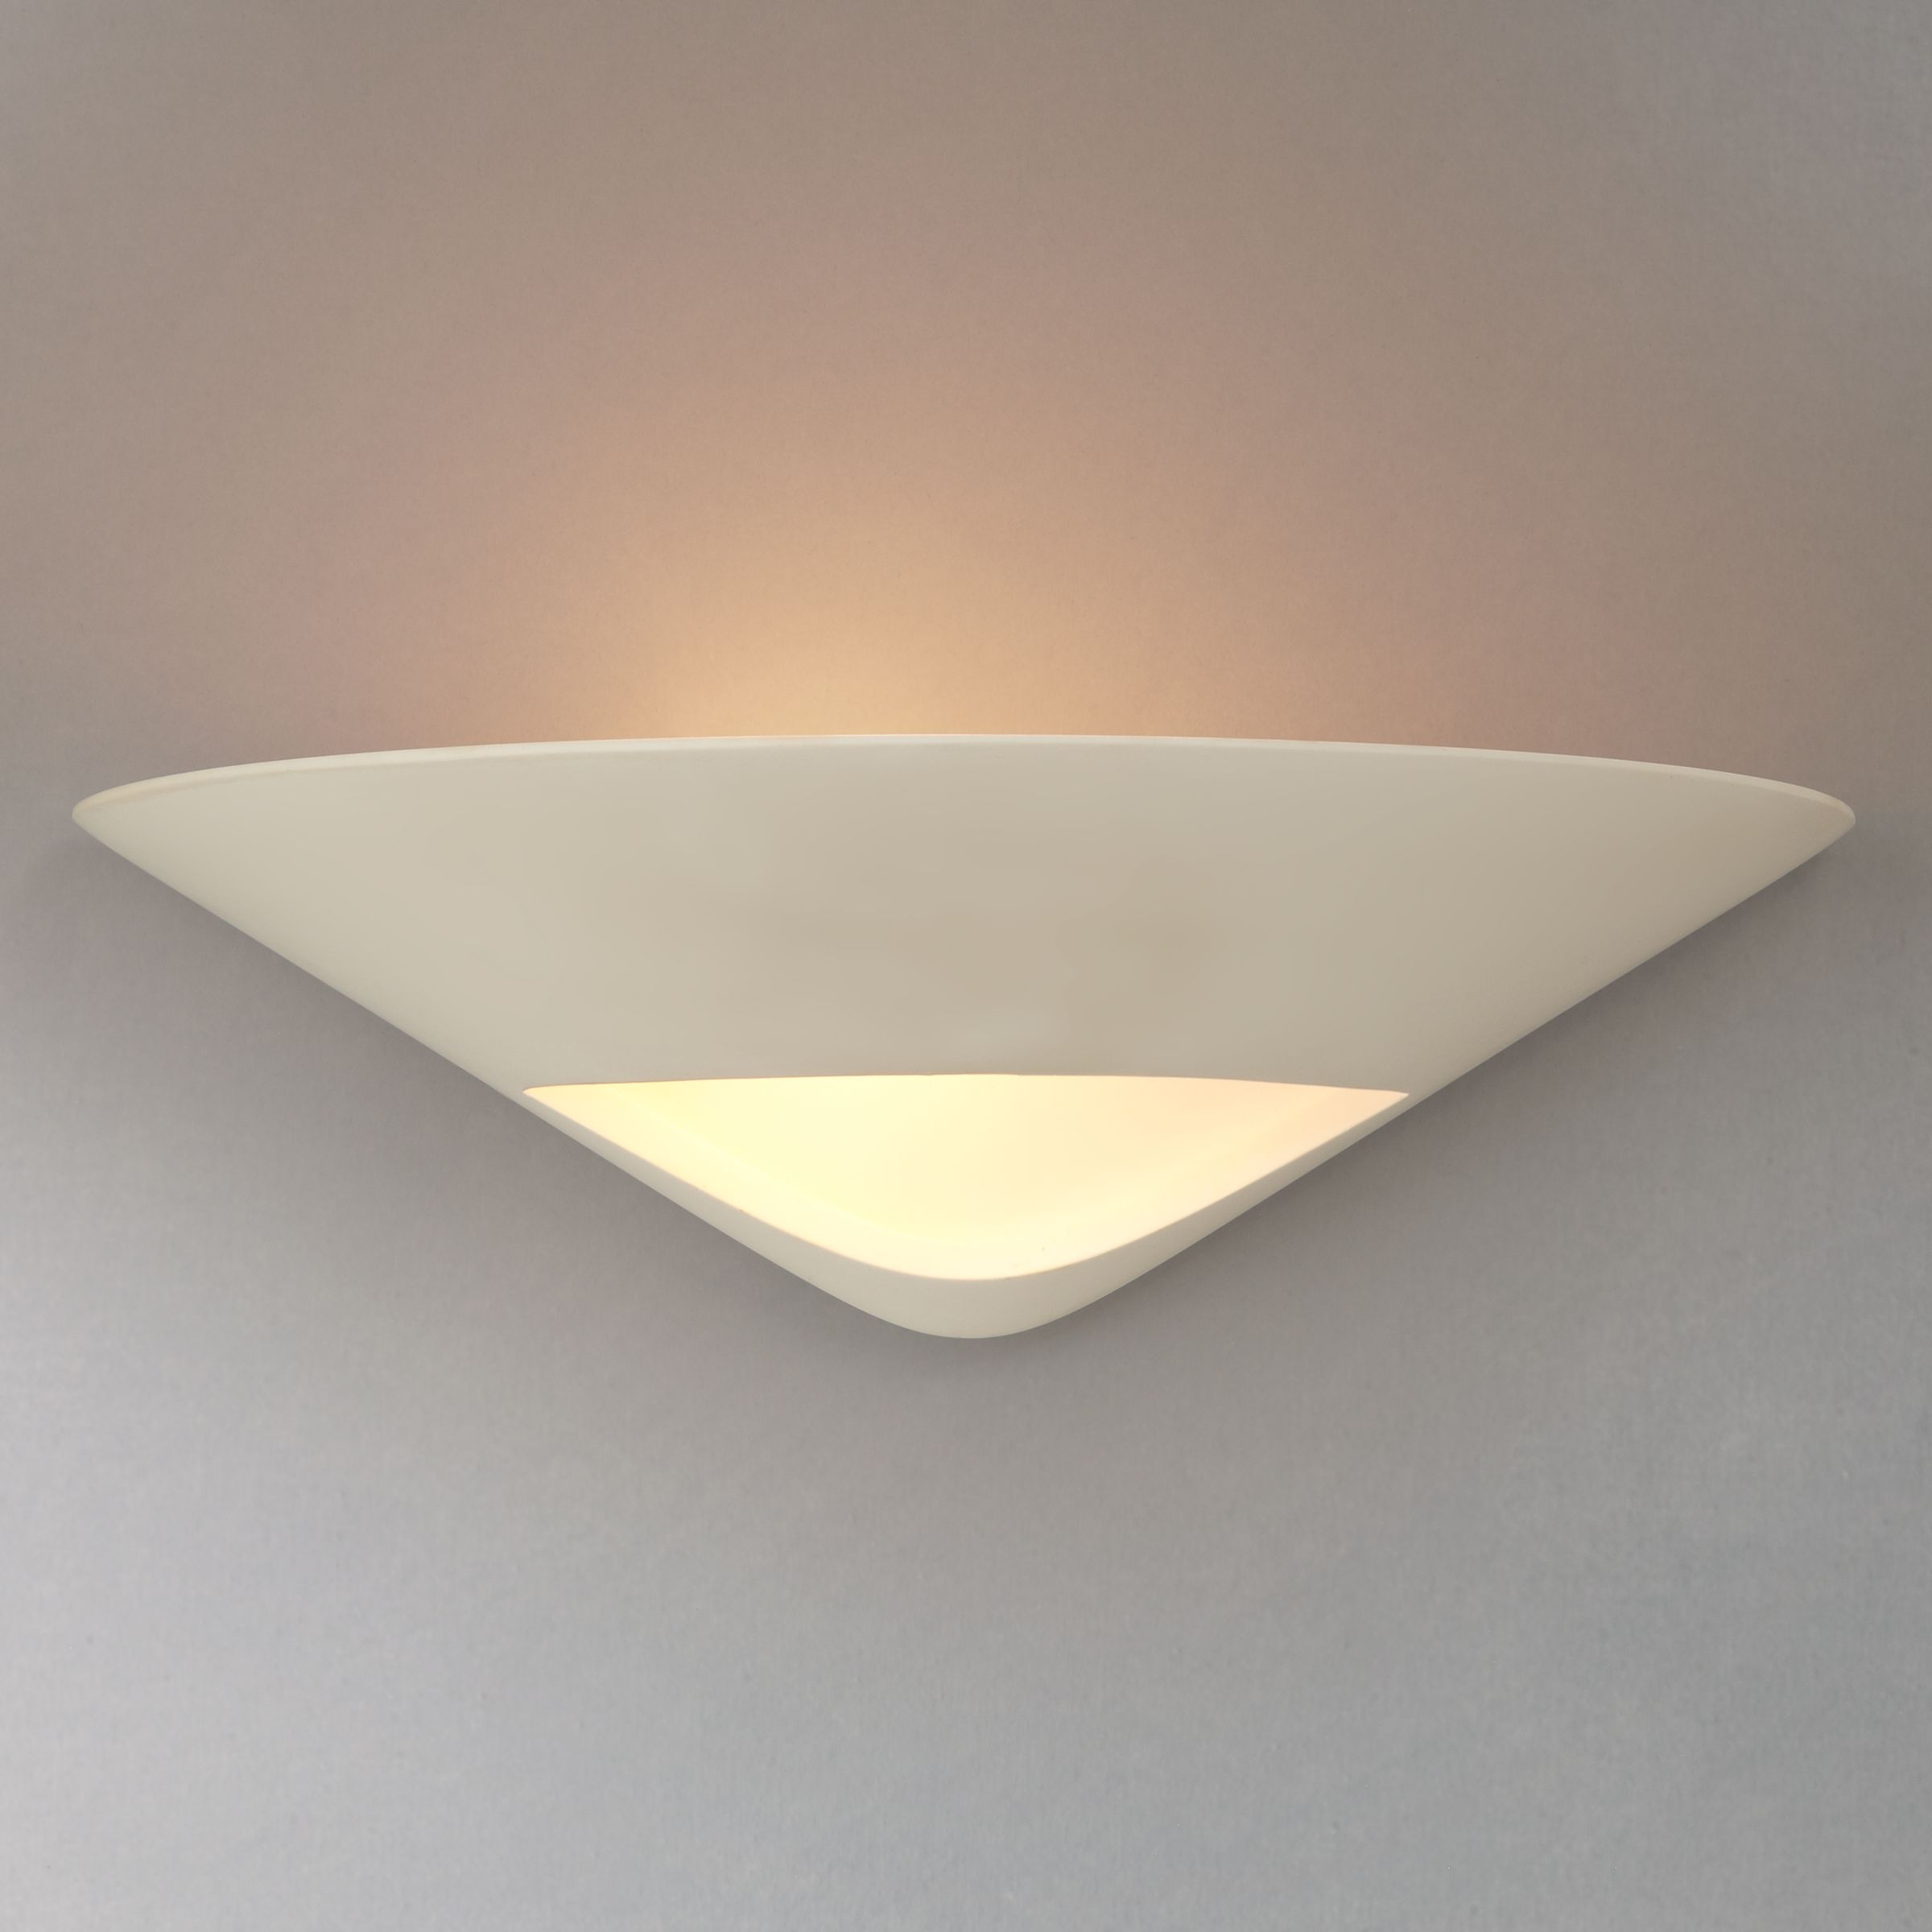 John Lewis Wall Lights Glass : Buy John Lewis Tessa Plaster and Glass Wall Uplighter John Lewis